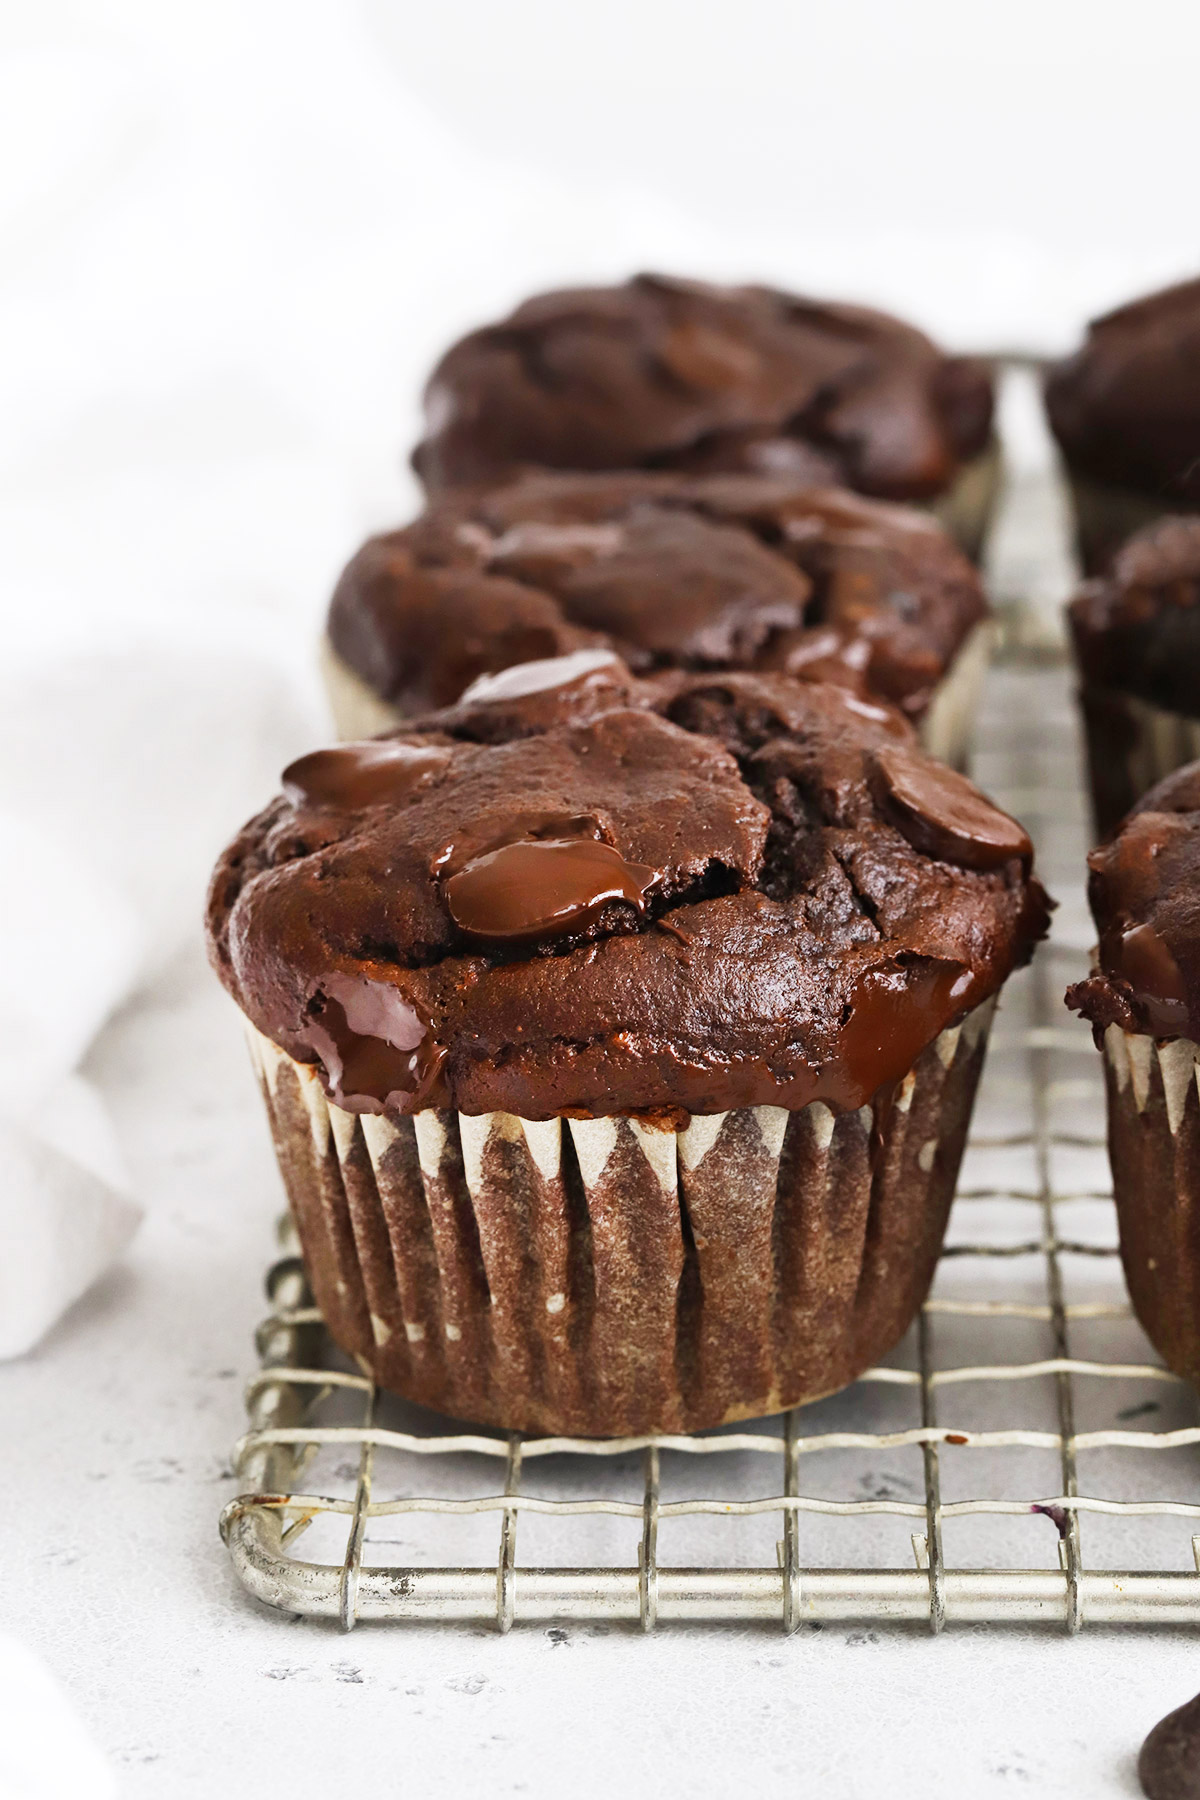 Close up front view of gluten-free chocolate banana muffins on a cooling rack